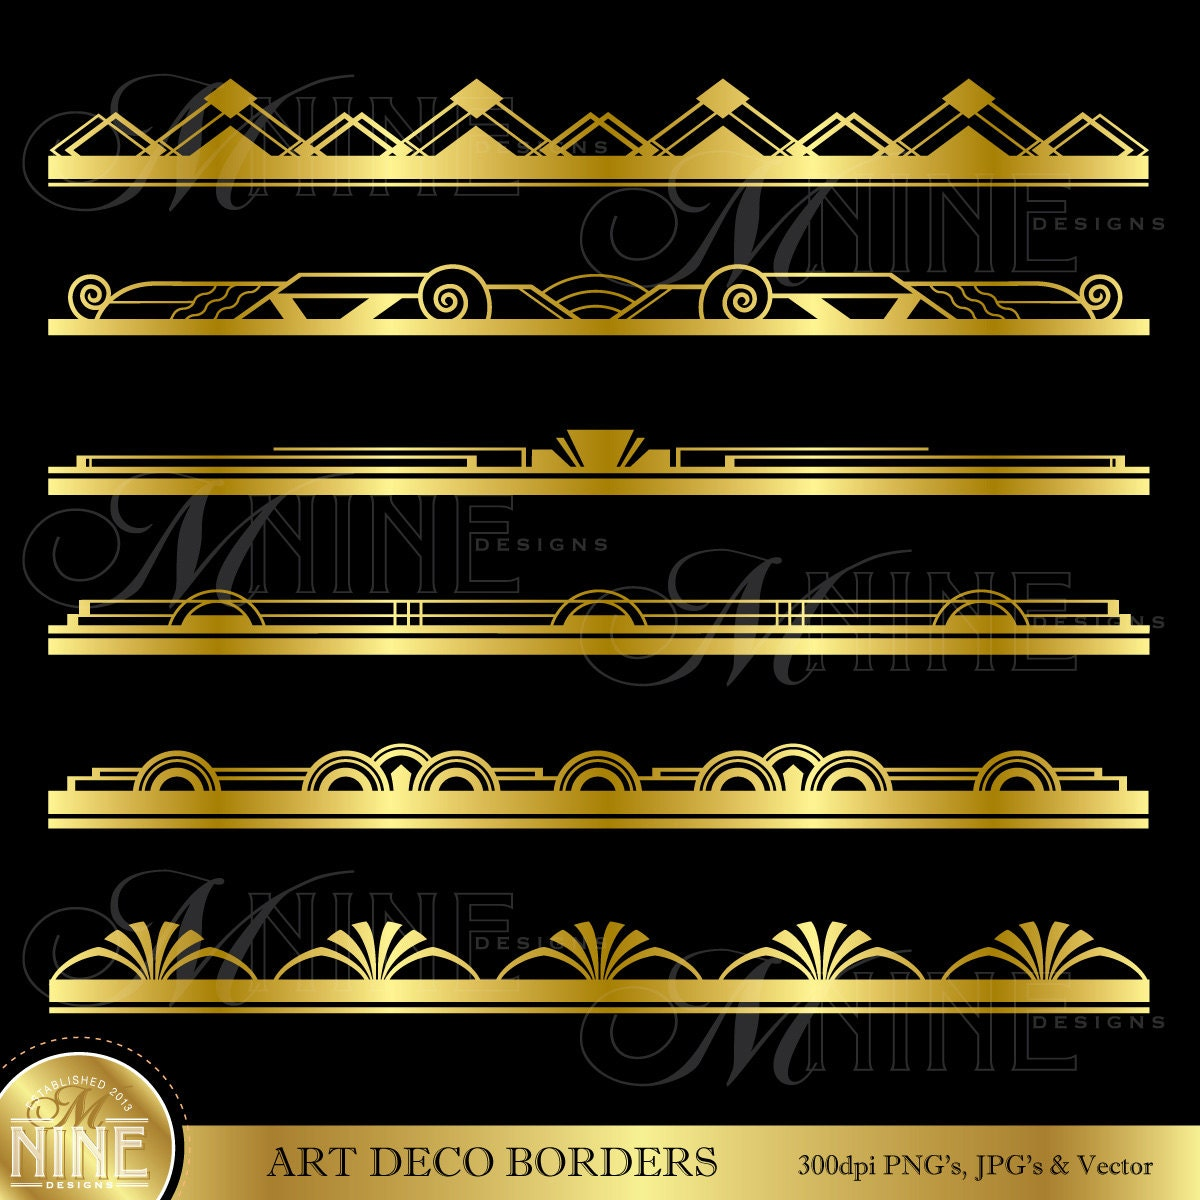 Gold ART DECO BORDER Clip Art Art Deco Design Elements